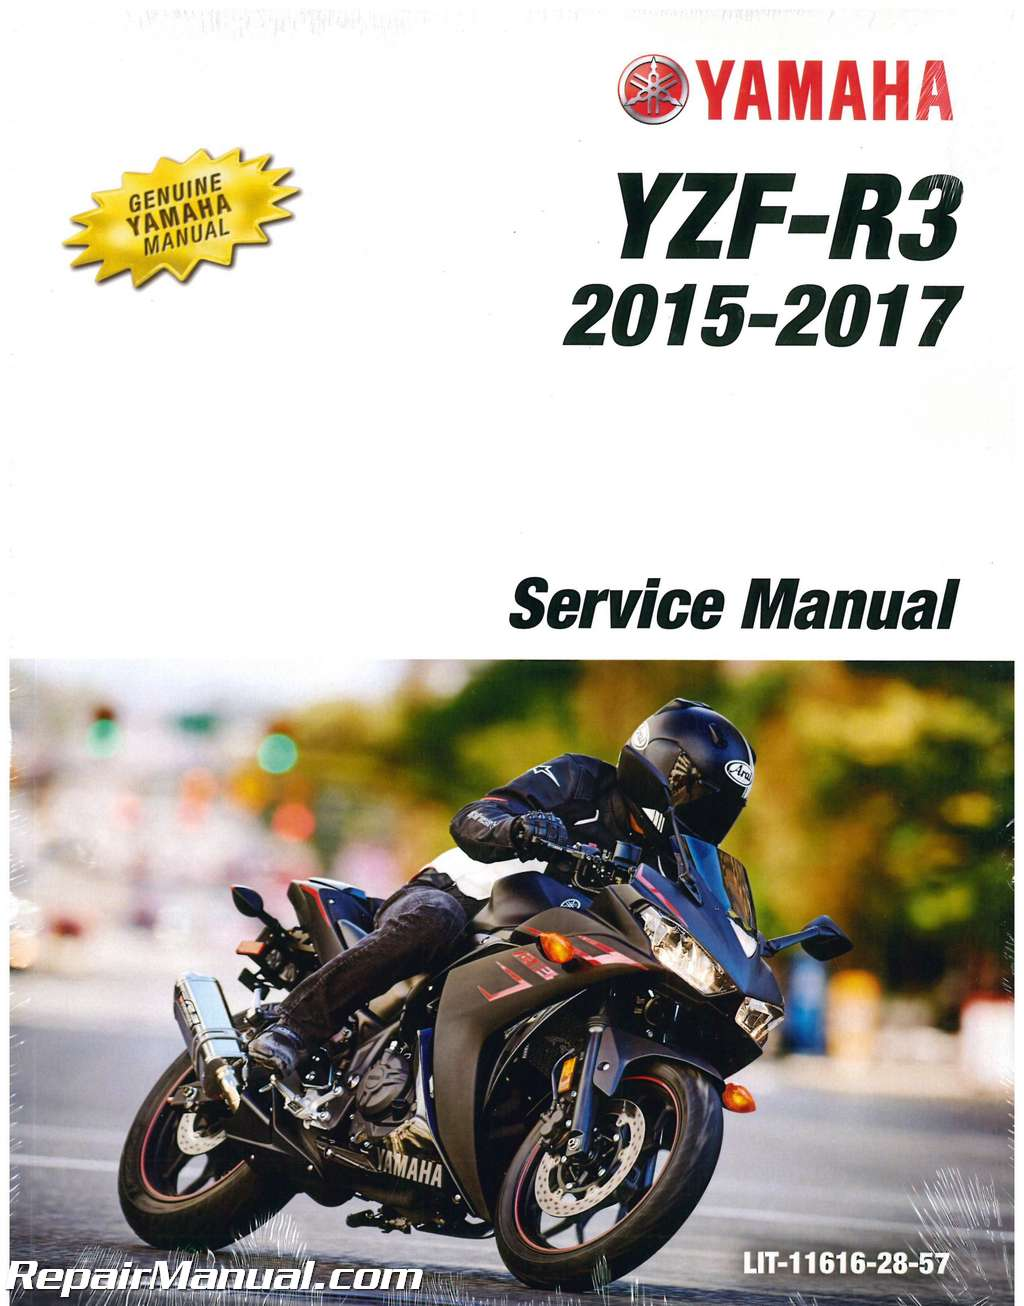 2015 2017 yamaha yzf r3 300cc motorcycle service manual rh repairmanual com yamaha motorcycle manual download Yamaha Motorcycle Engine Manual